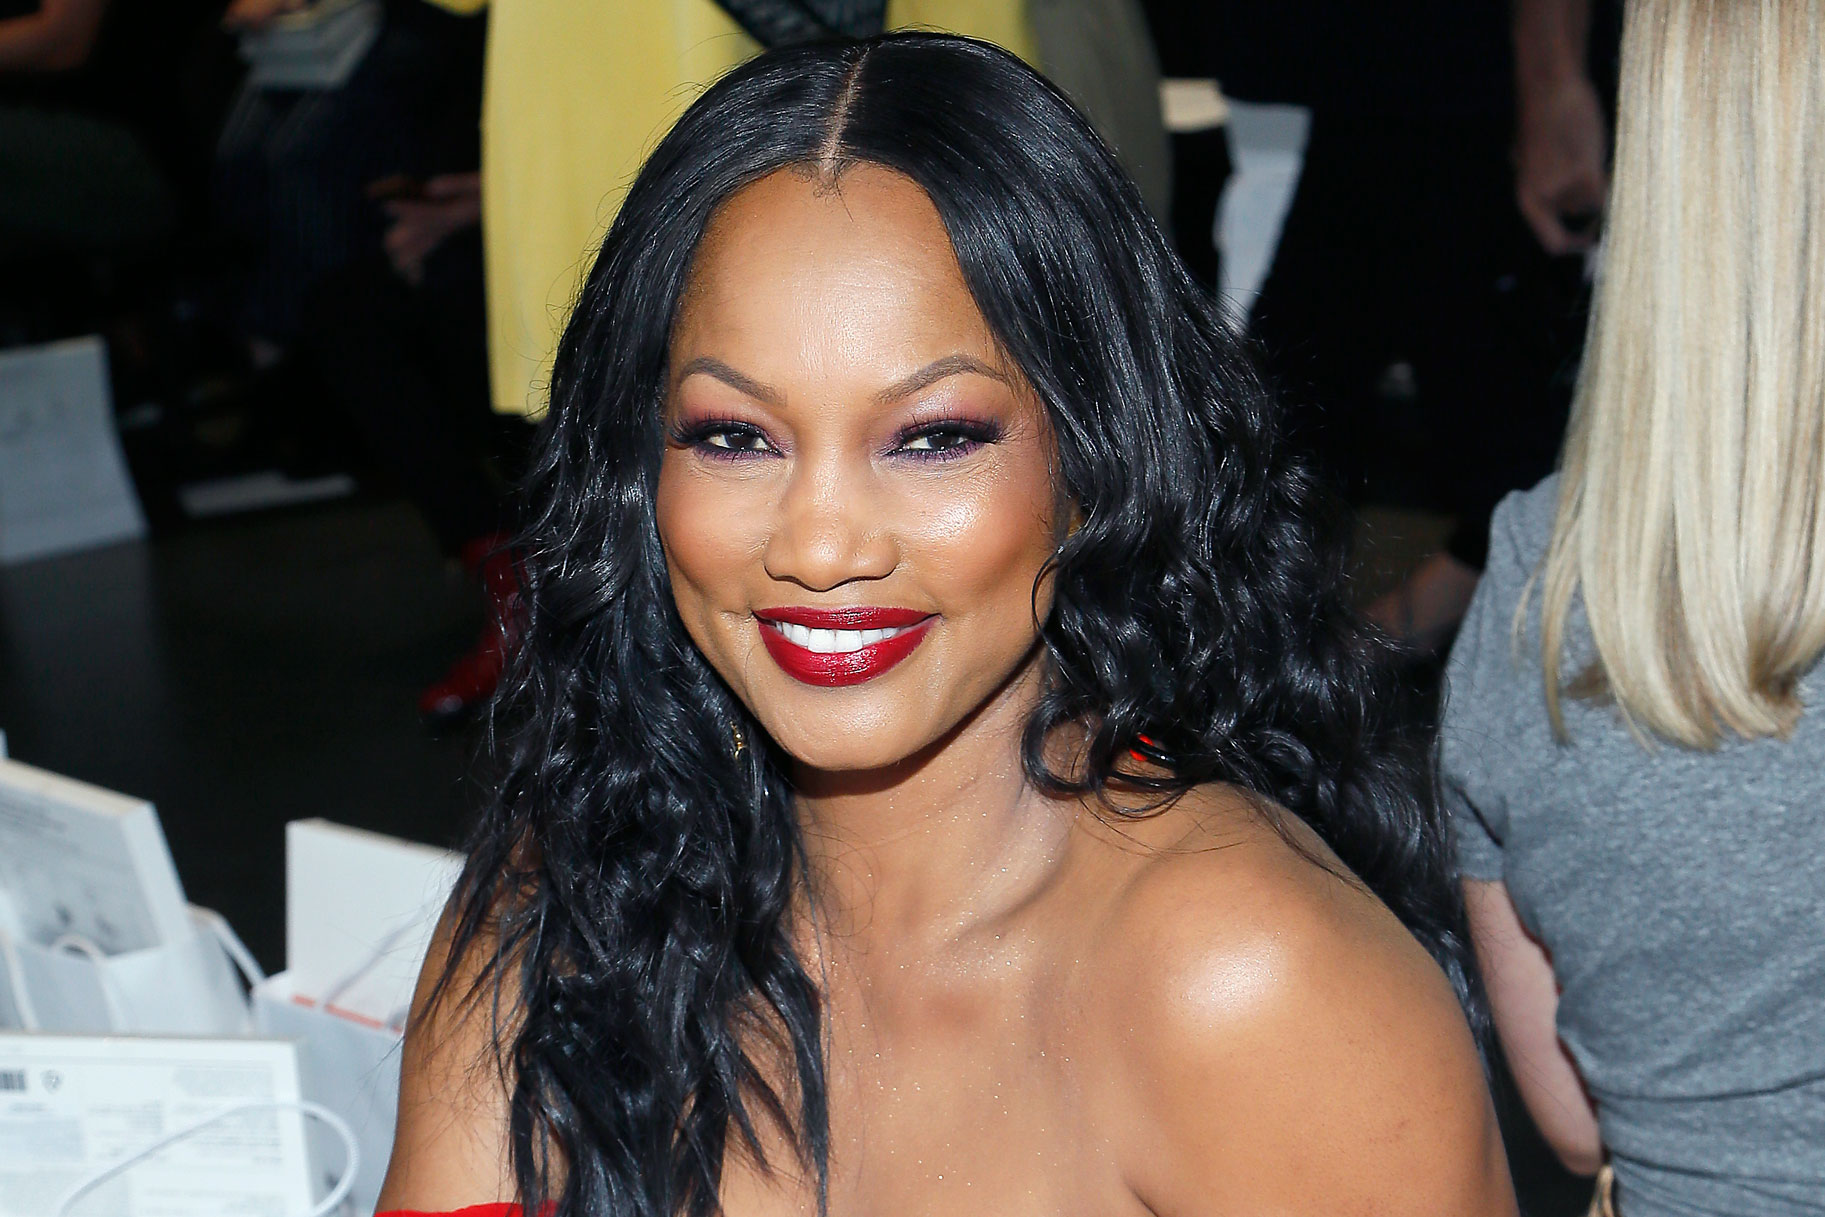 """Garcelle Beauvais on Being the First Black RHOBH Cast Member: """"It's About Time"""""""